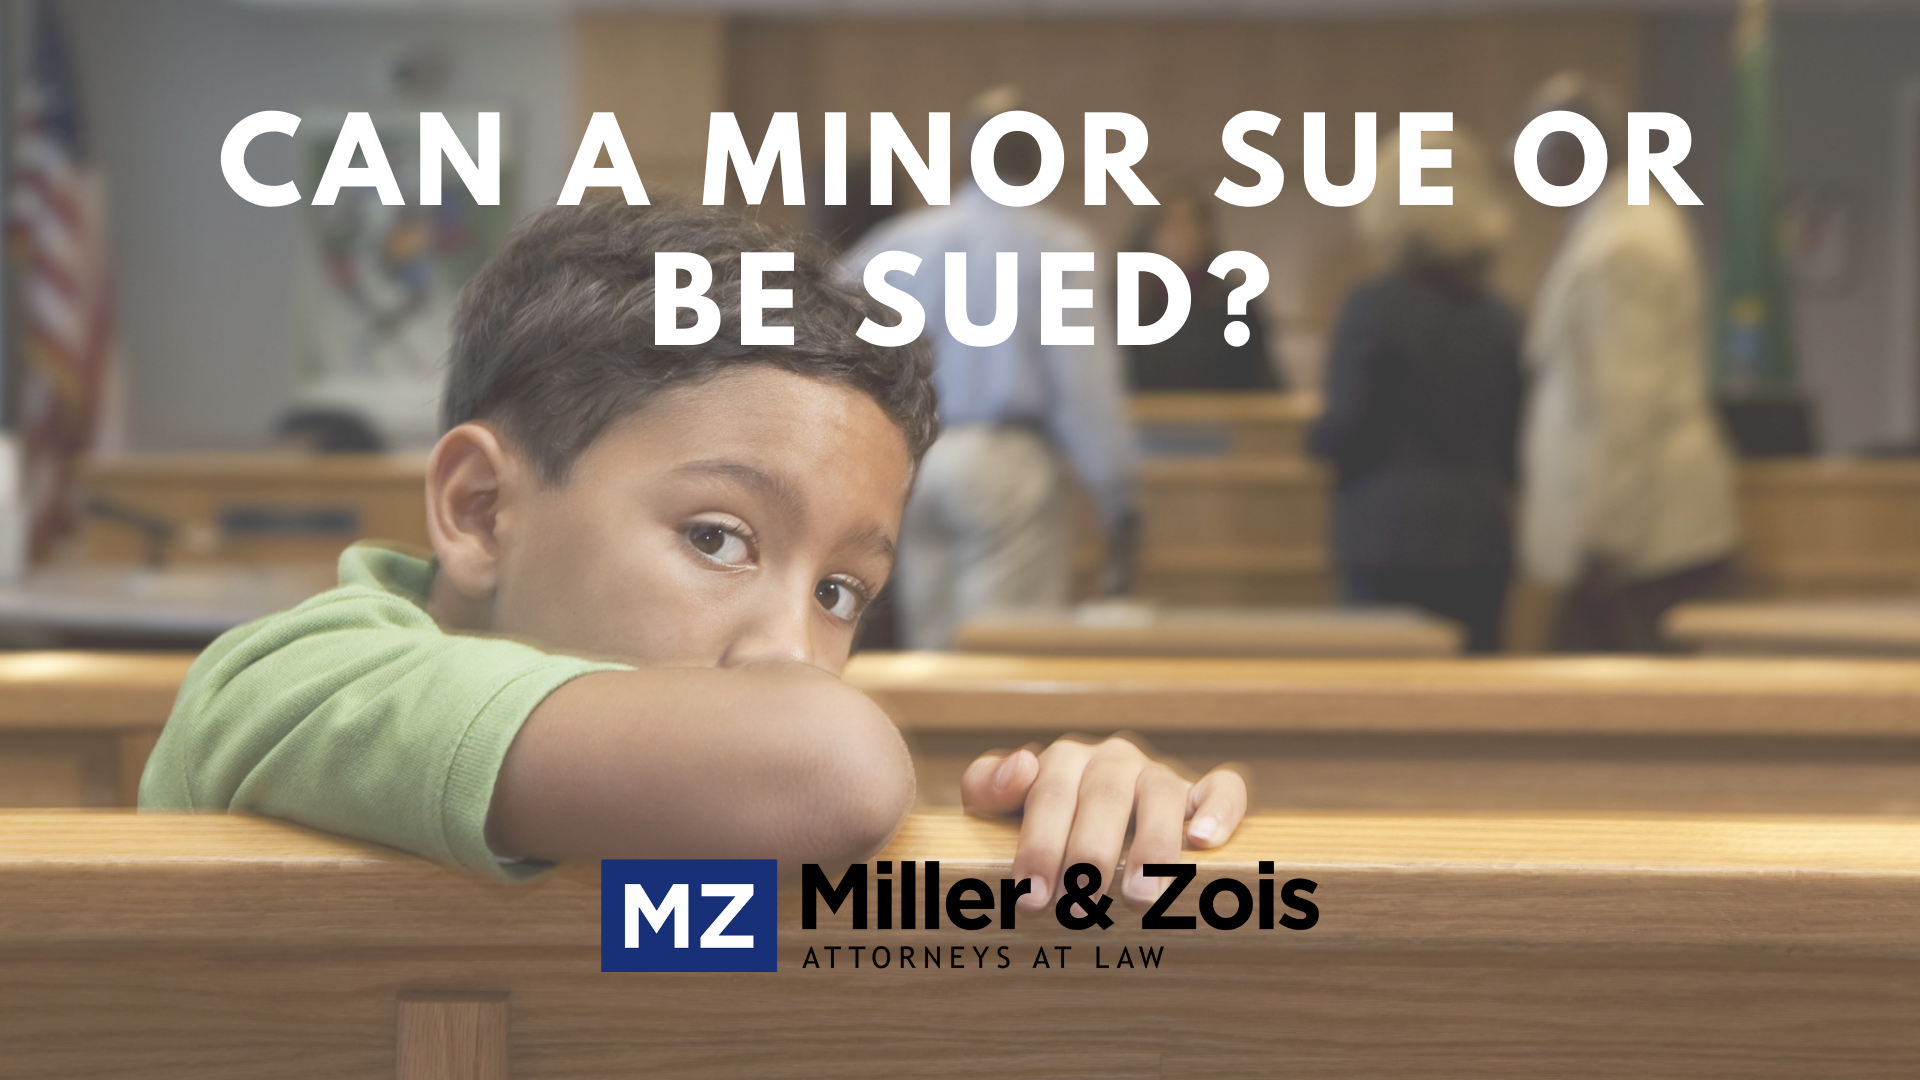 Can-a-minor-sue-or-be-sued_